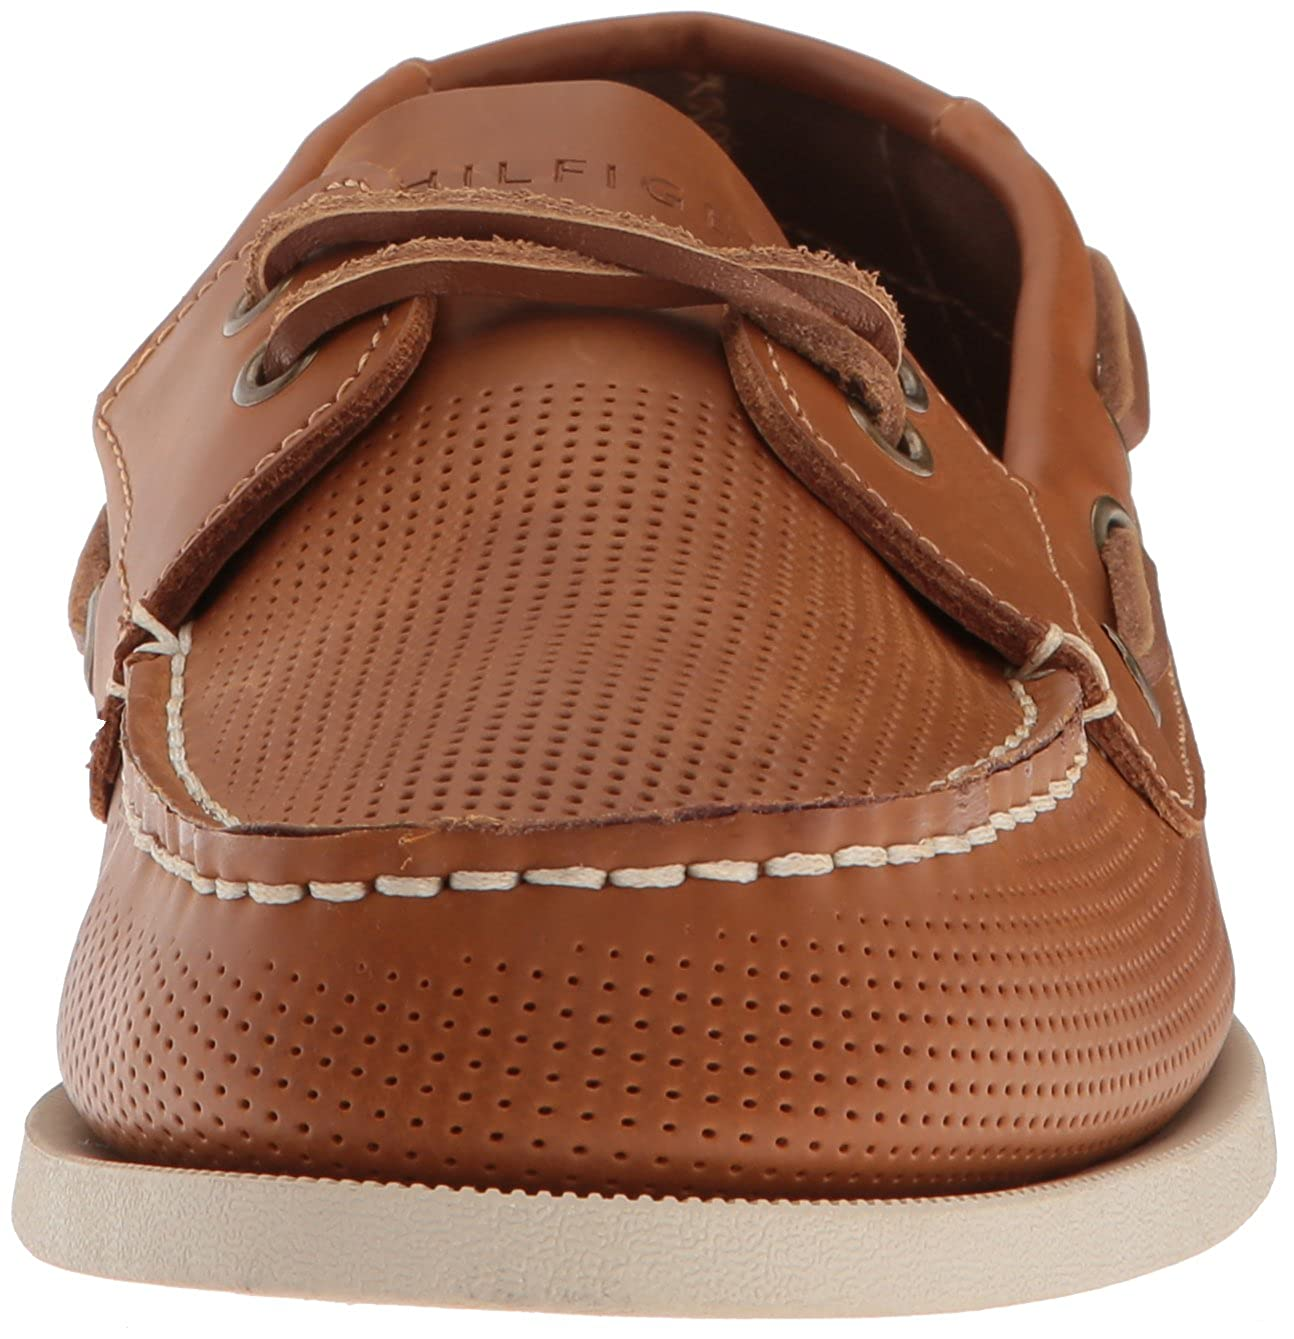 b409e815f9620a Tommy Hilfiger Men s Bowman Boat Shoe Tan 8 D(M) US  Buy Online at Low  Prices in India - Amazon.in